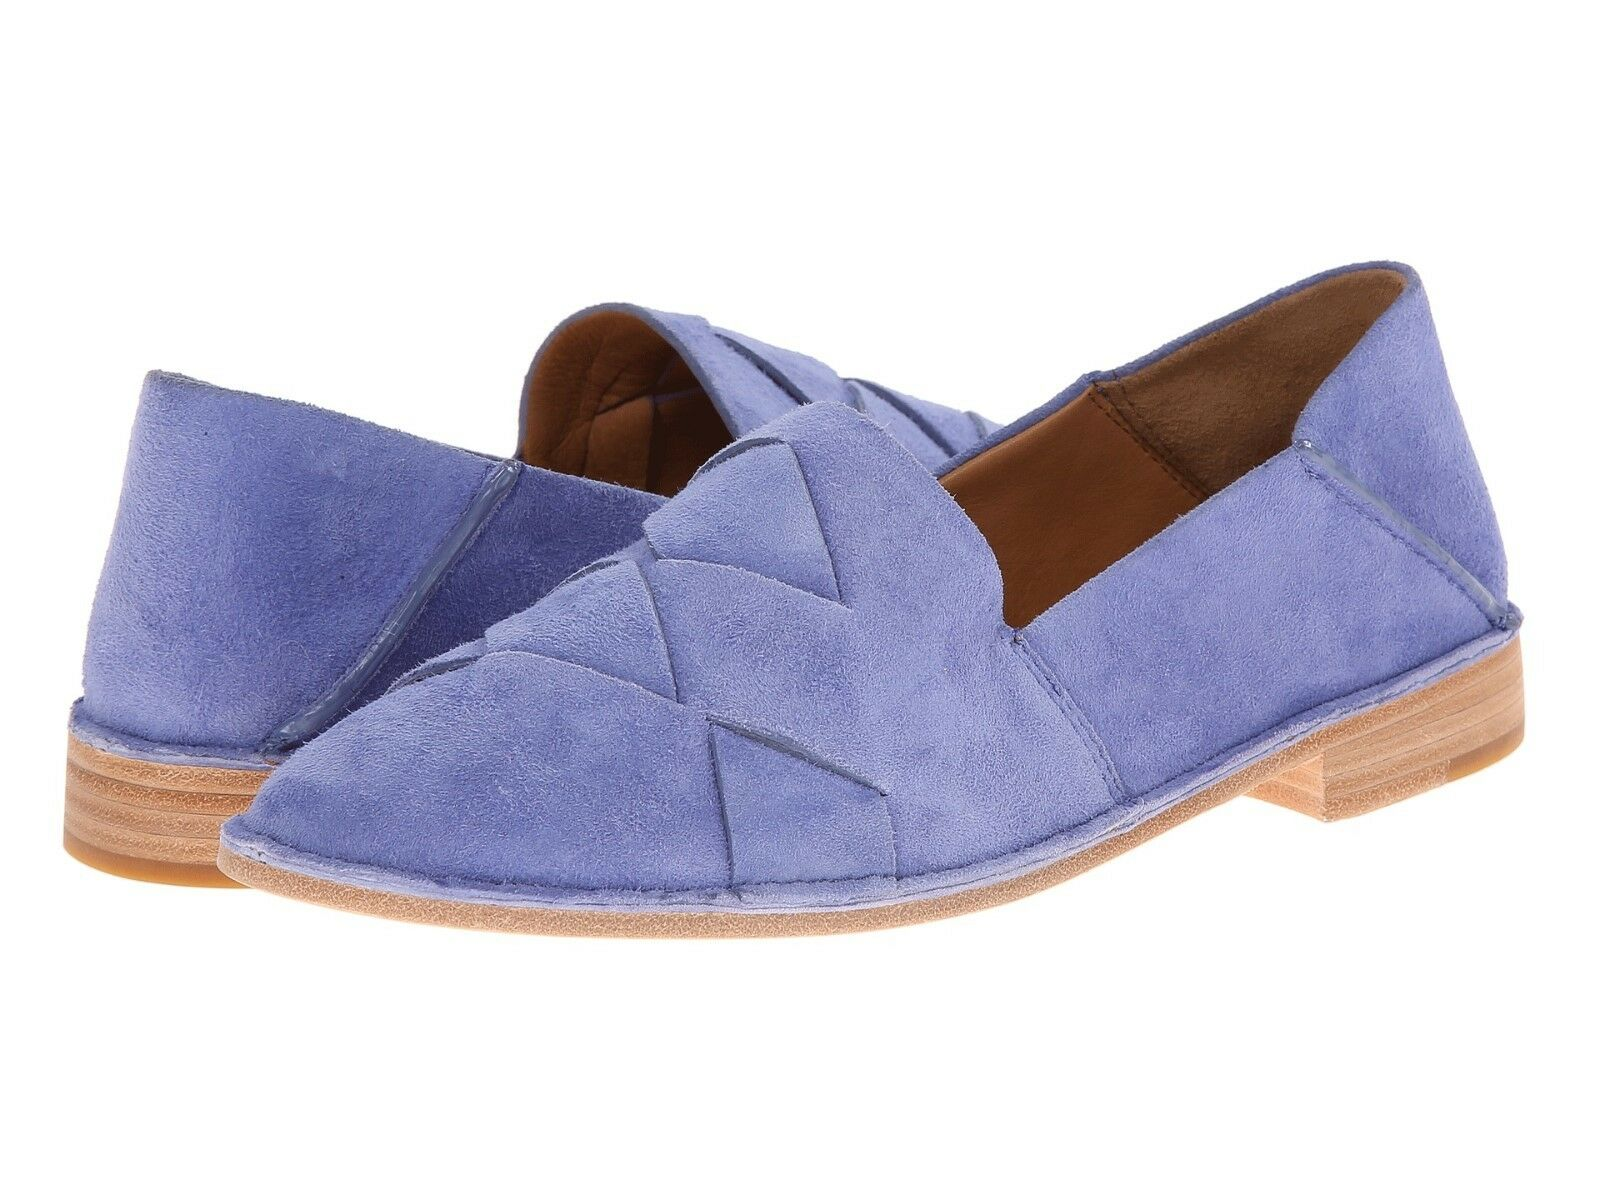 Aerin Hawley bleubell Chaussures Chaussures Chaussures En Daim Taille 7.5 7 1 2 e19951